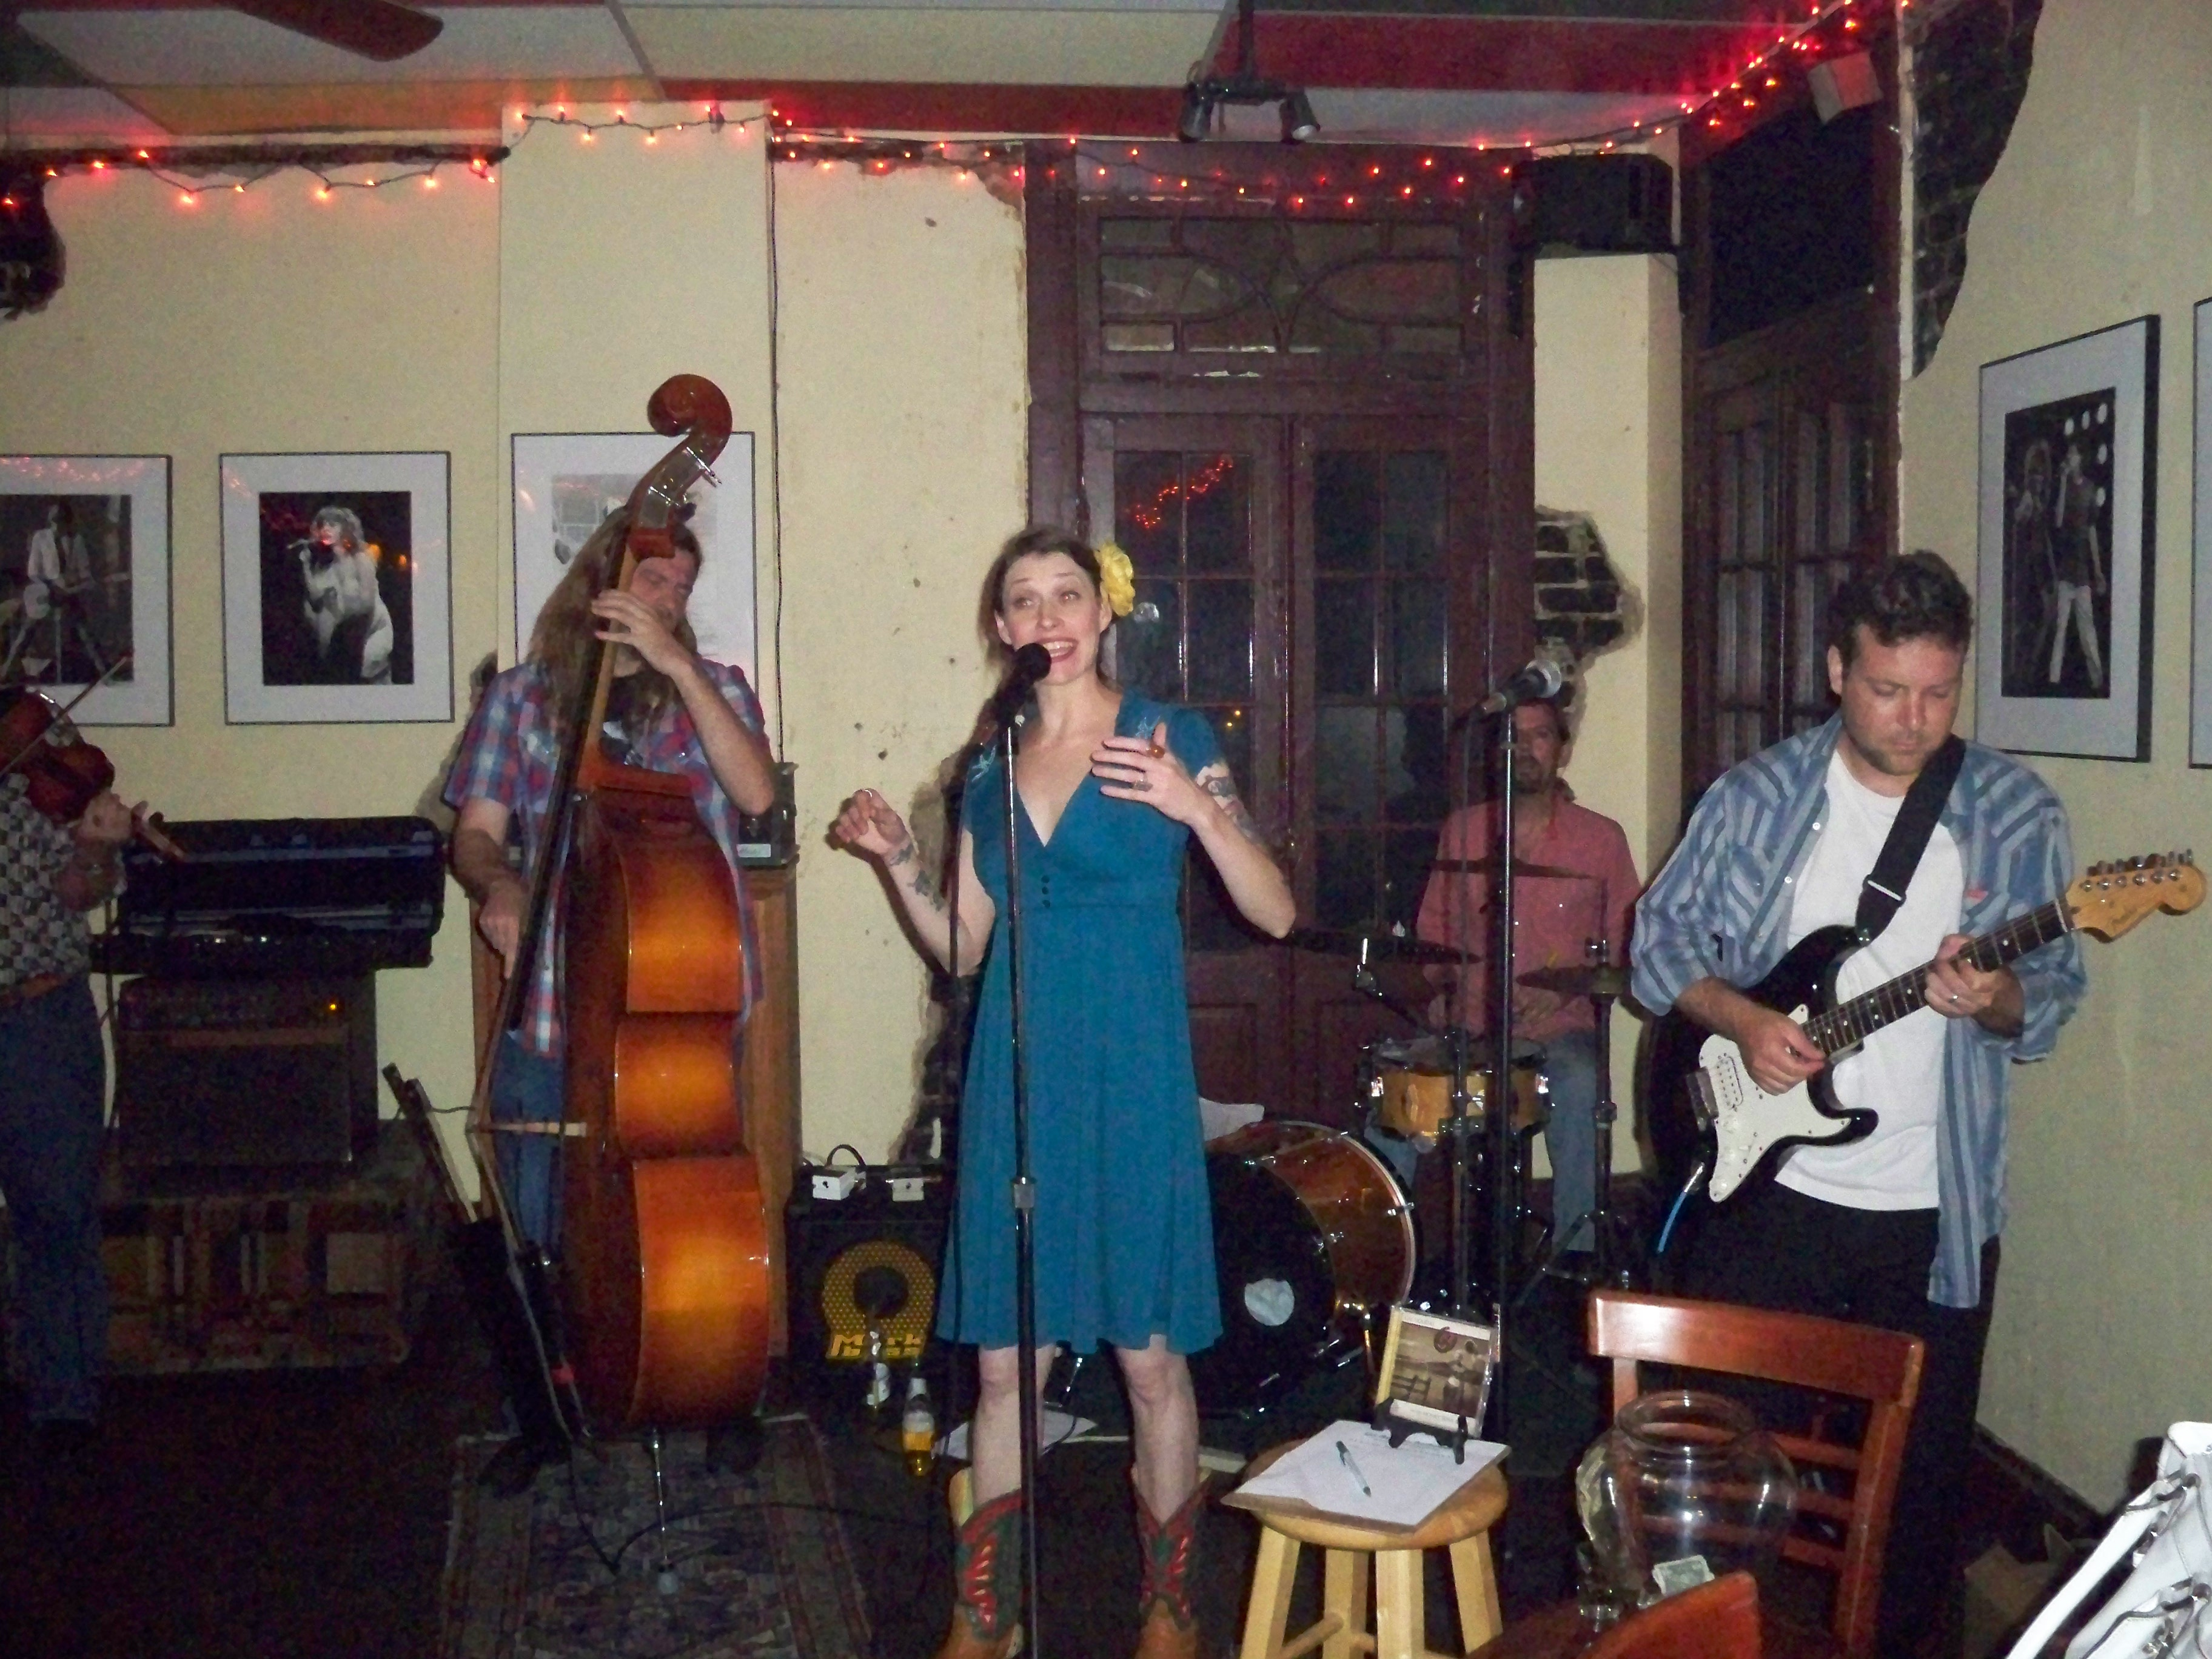 Gal Holiday and the Honkeytonk Revue at Mimi's in the Marigny